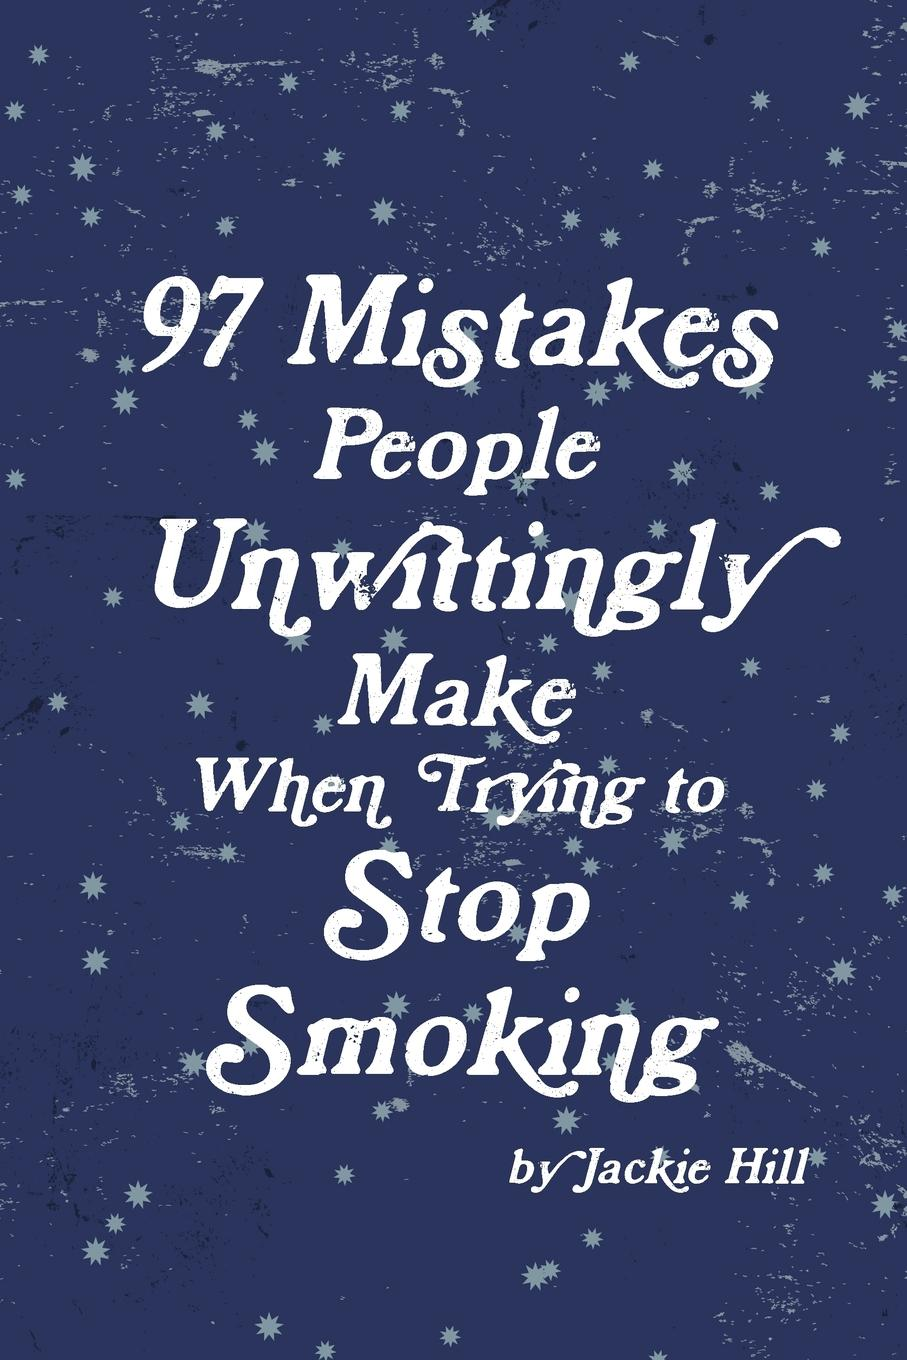 цена на Jackie Hill 97 Mistakes People Unwittingly Make When Trying to Stop Smoking